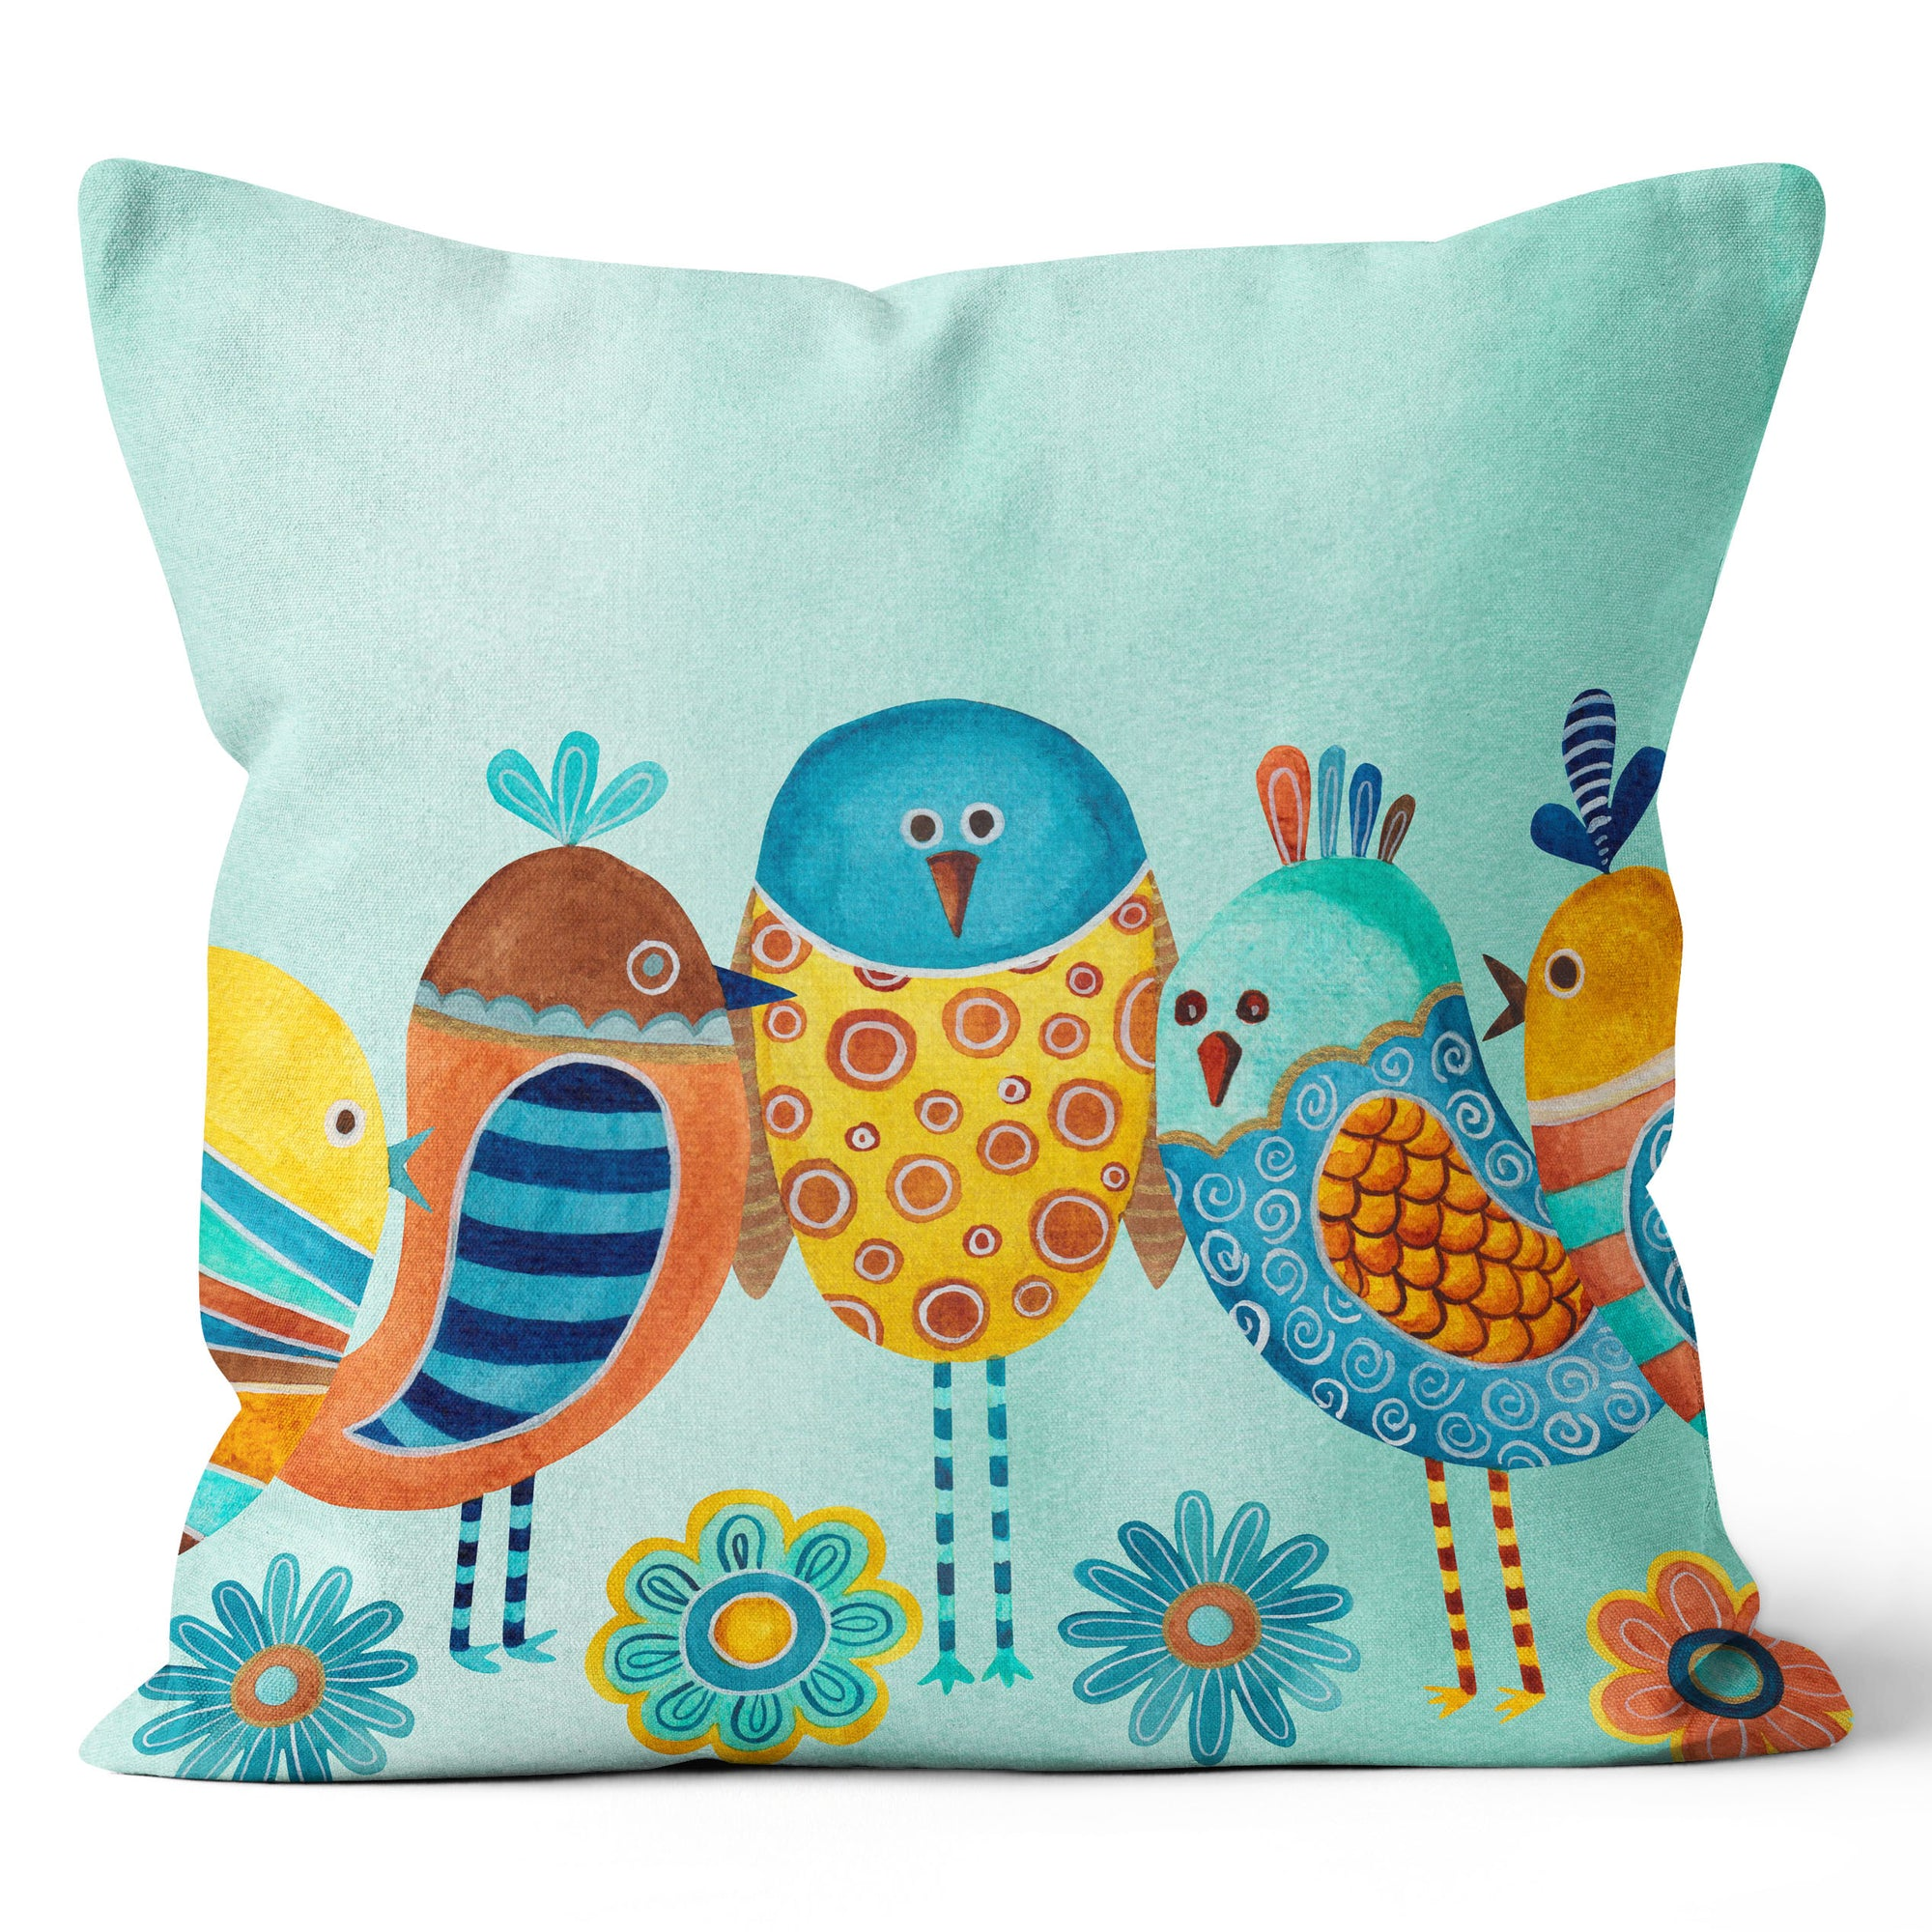 Tropical Heat Whimsical Blue Birds Cushion